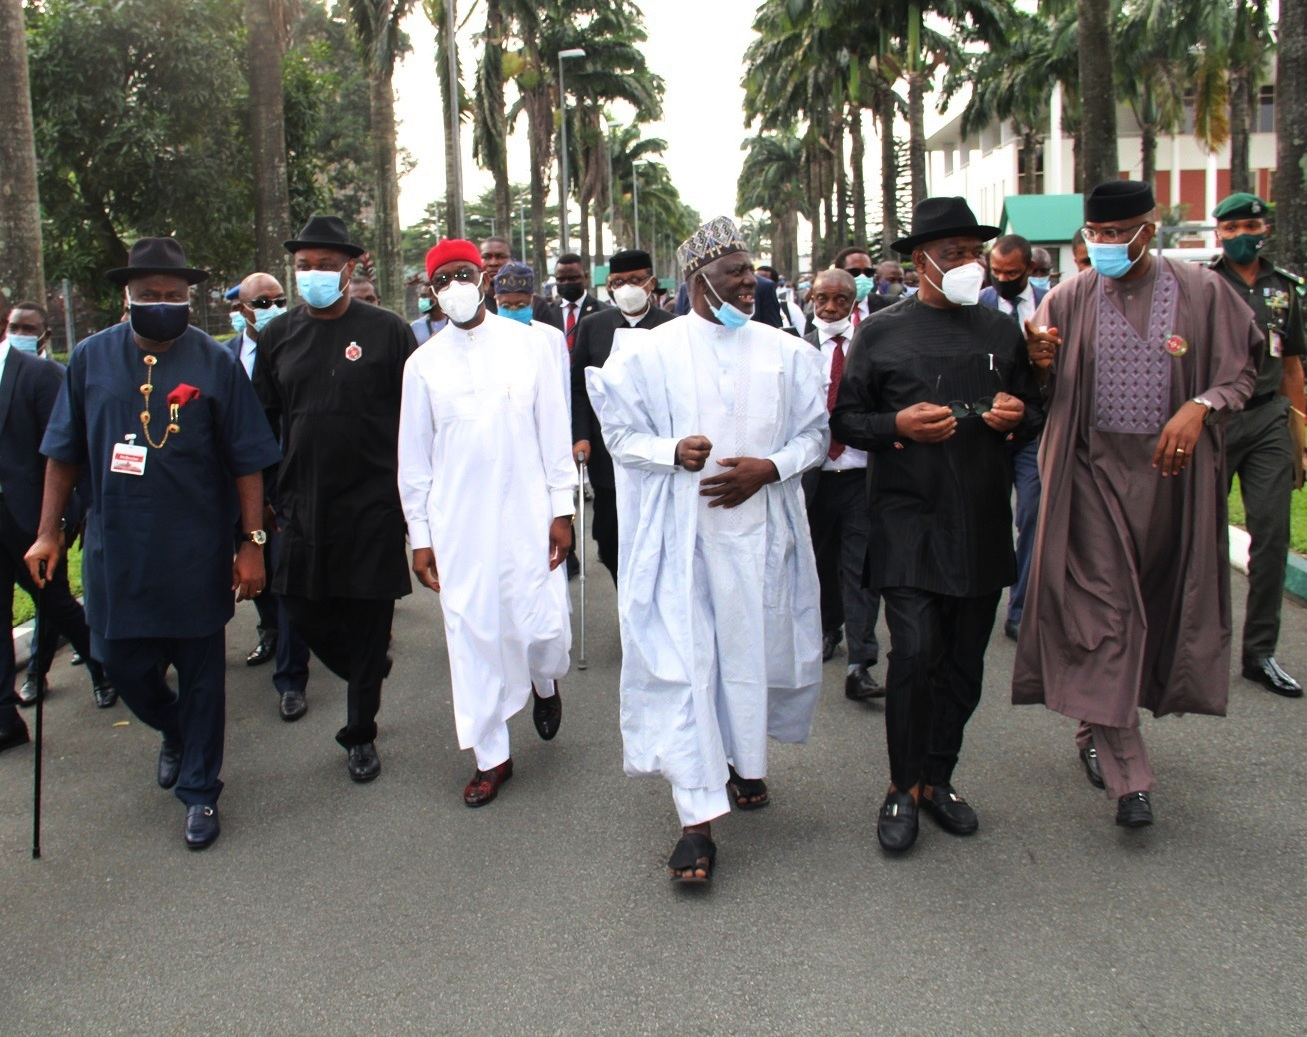 Representative of the President, and Chief of Staff to the President,Ambassador Ibrahim Gambari (3rd right); Deputy Senate President , Ovie Omo-Agege (right); Delta Governor, Senator Dr. Ifeanyi Okowa (3rd left); Rivers State Governor, Barr. Nyesom Wike (2nd right); Bayelsa State Governor, Senator Douye Diri and others, during the South-South Leaders Meeting with the Presidential delegation held in Government House, Port Harcourt, Rivers State on Tuesday, November 24, 2020 (Pix: Jibunor Samuel)